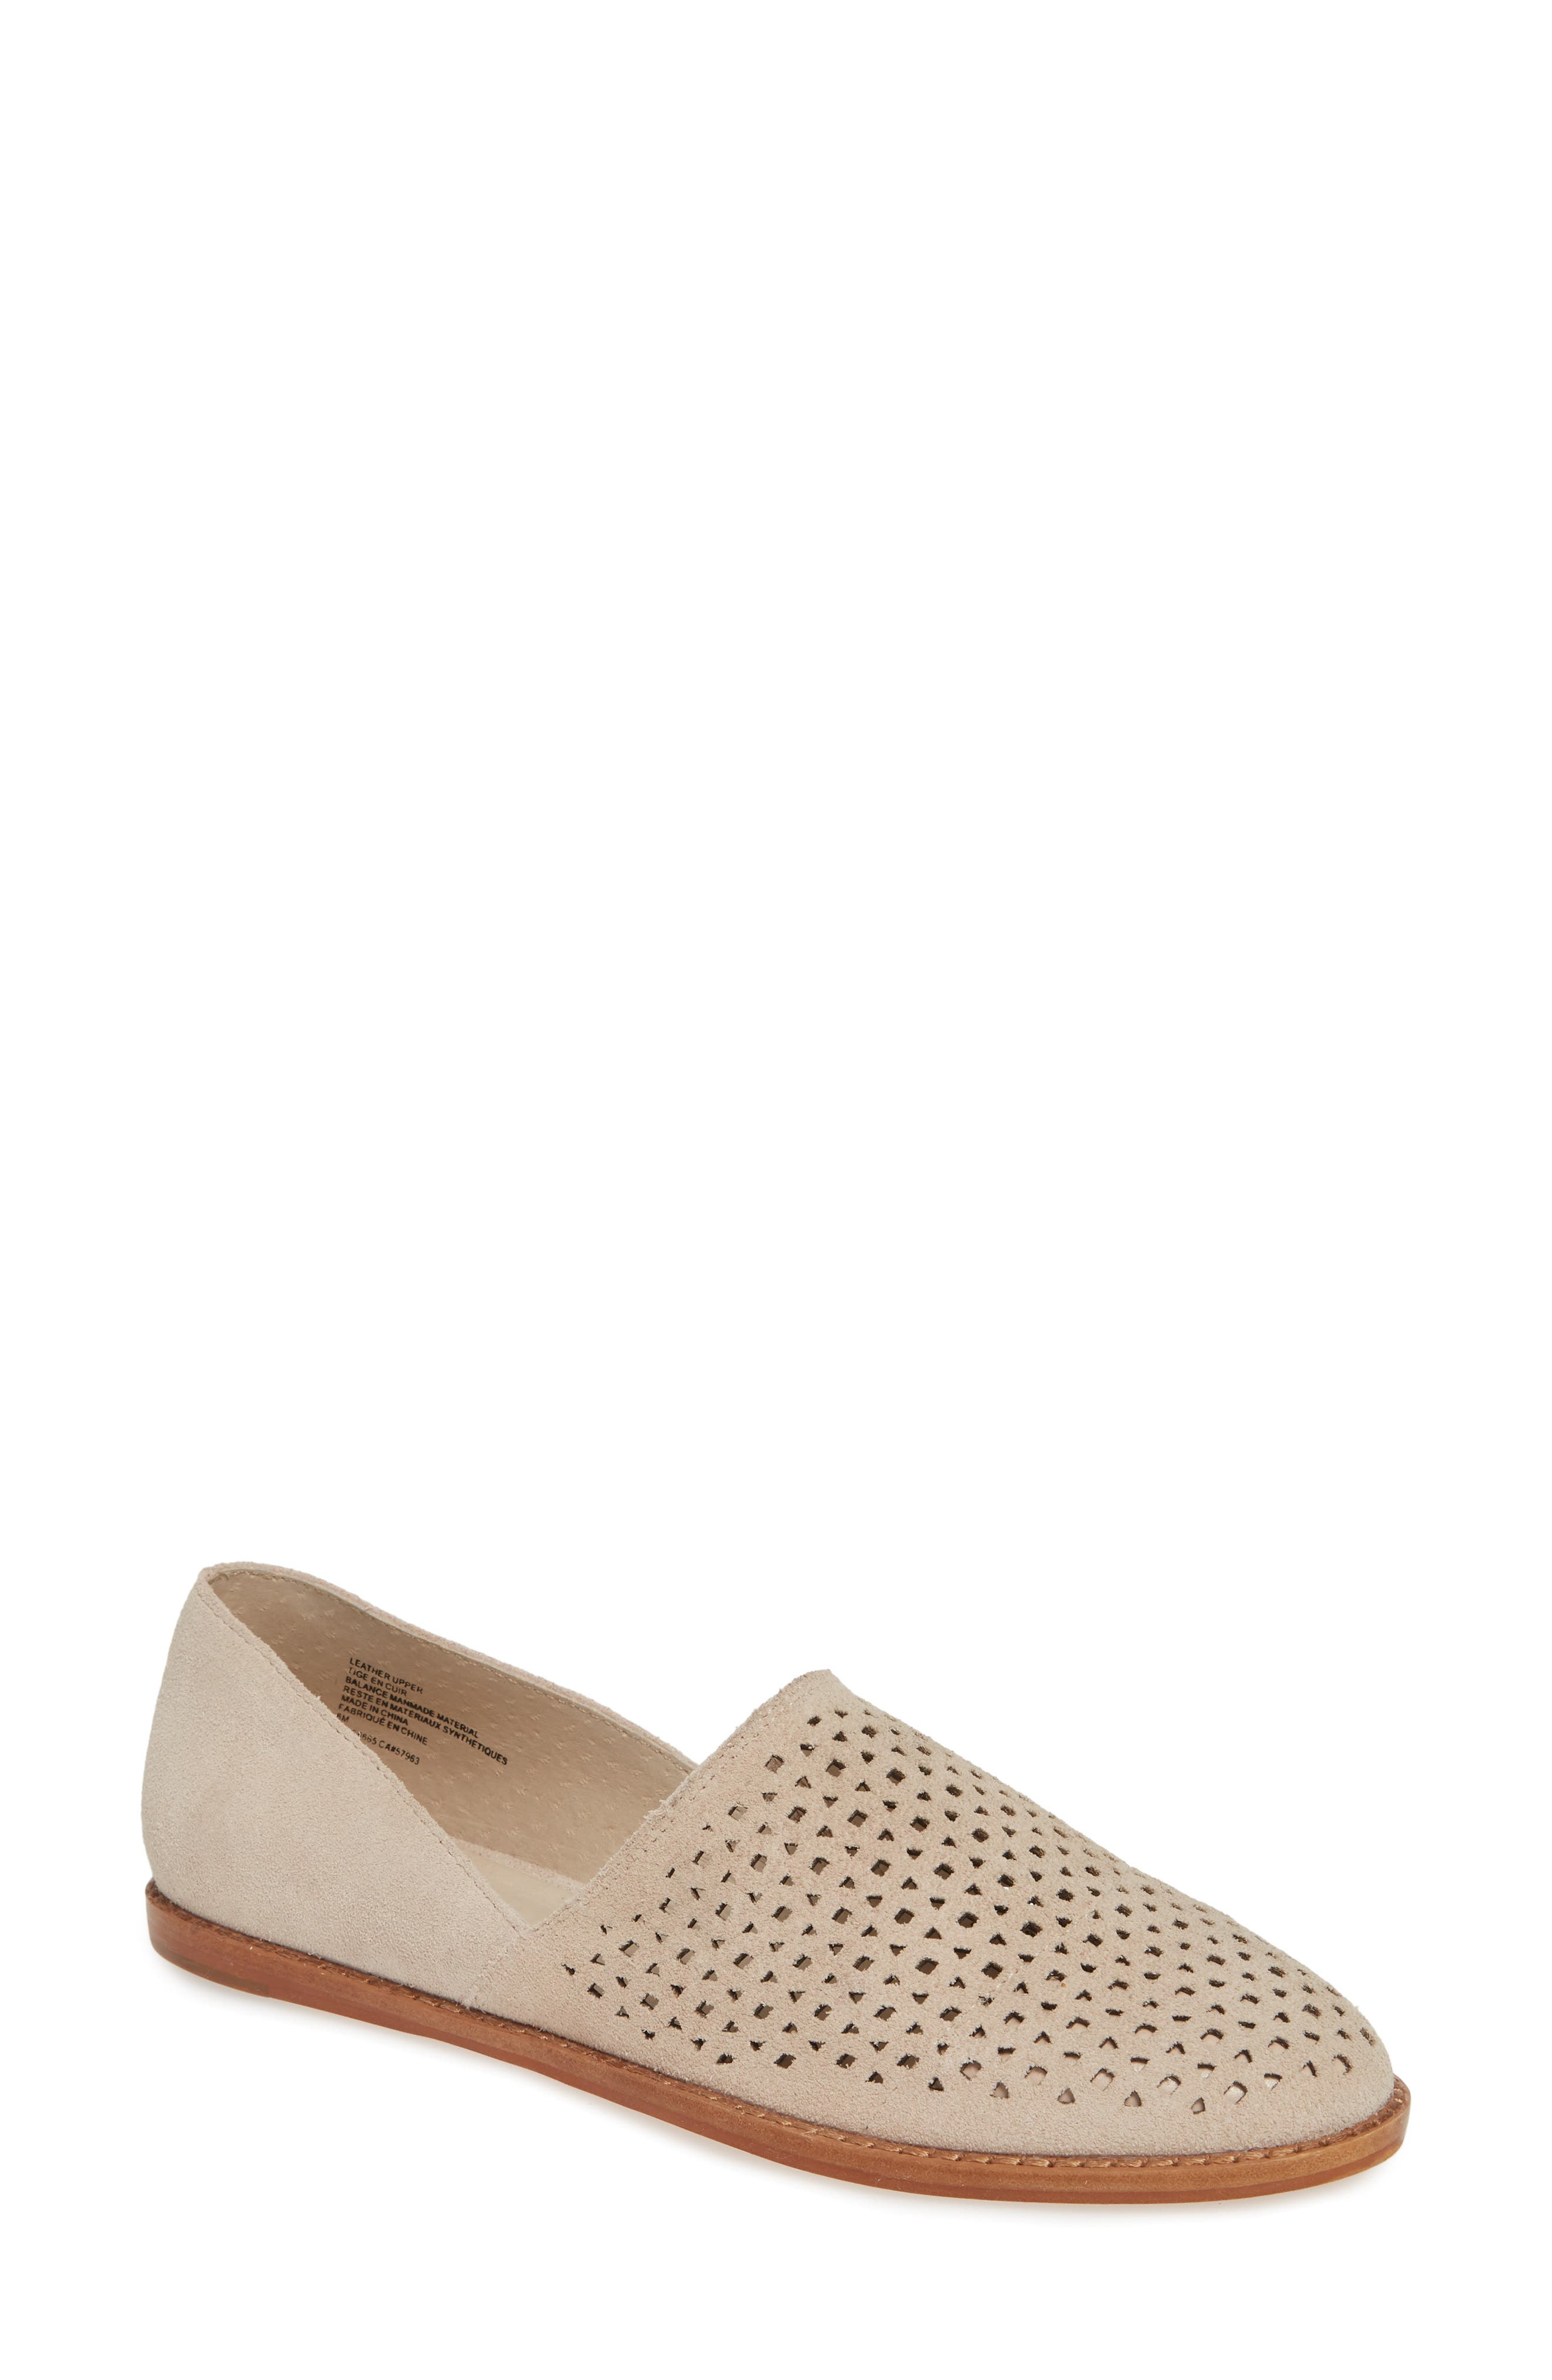 08c404ea6375 Caslon Adrian Perforated Flat- Beige